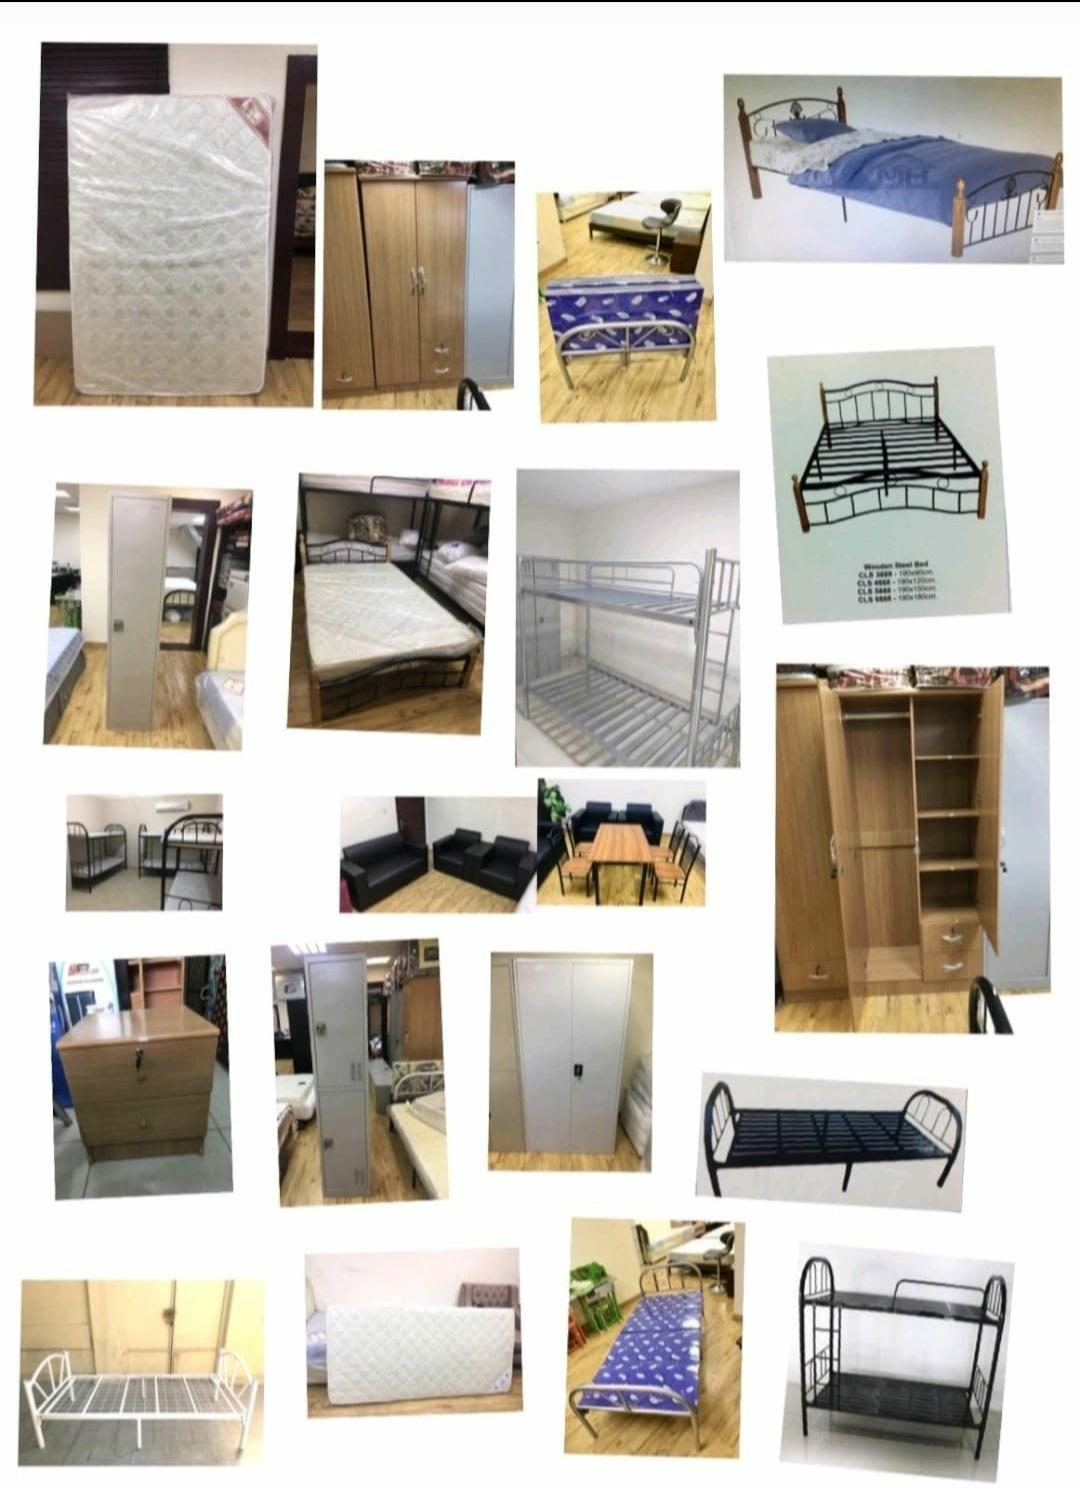 Brand new mattress & bed framers Wholesale price w